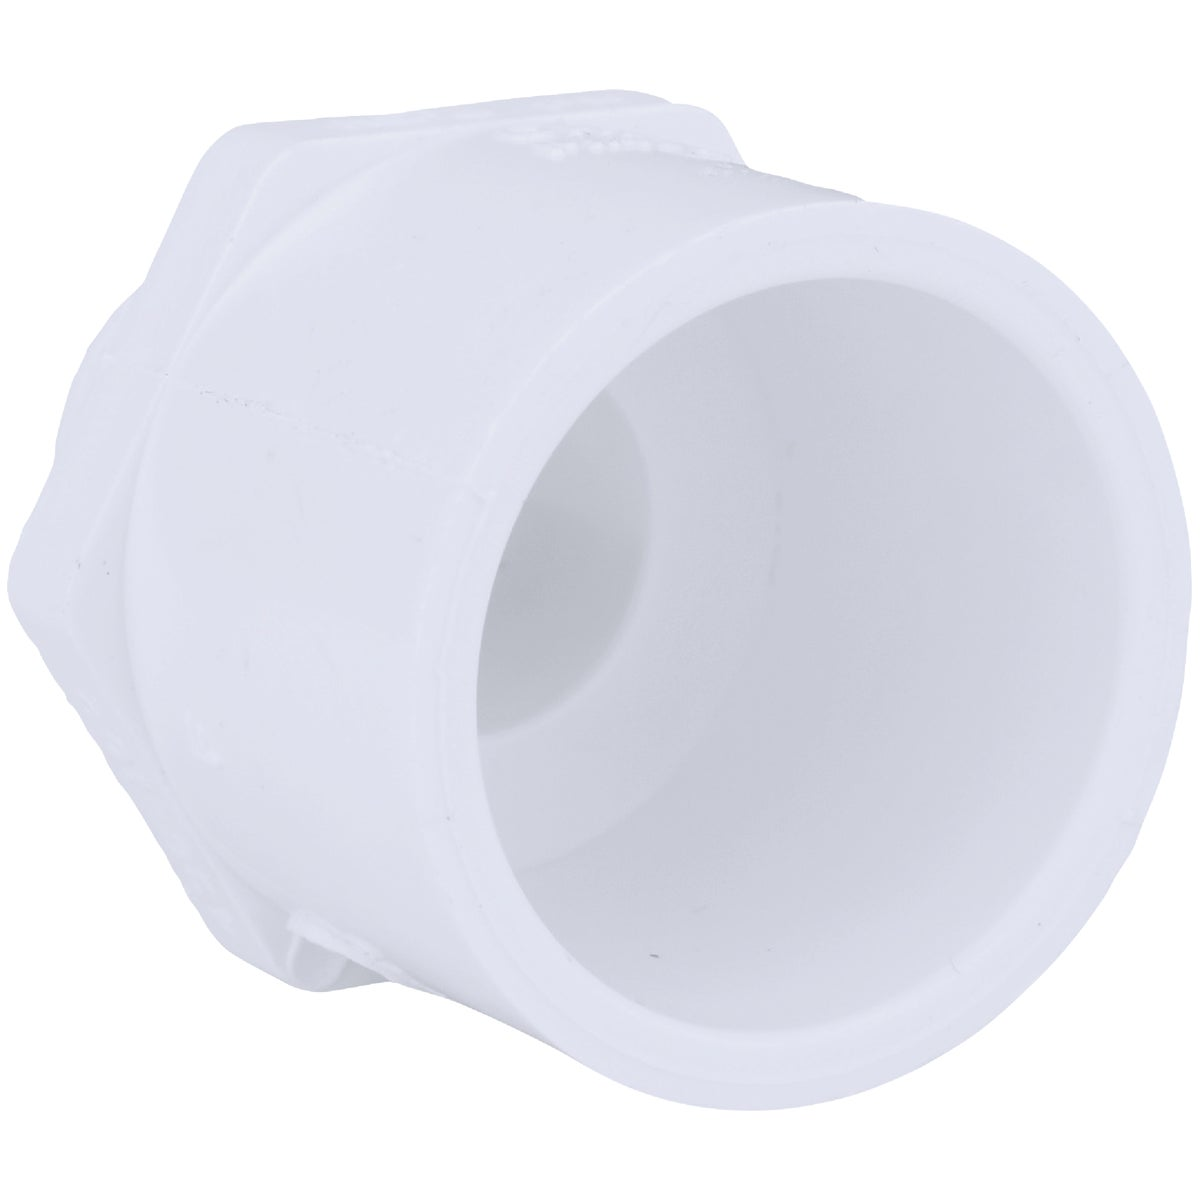 3/4X1 PVC MIPXS ADAPTER - 30477 by Genova Inc